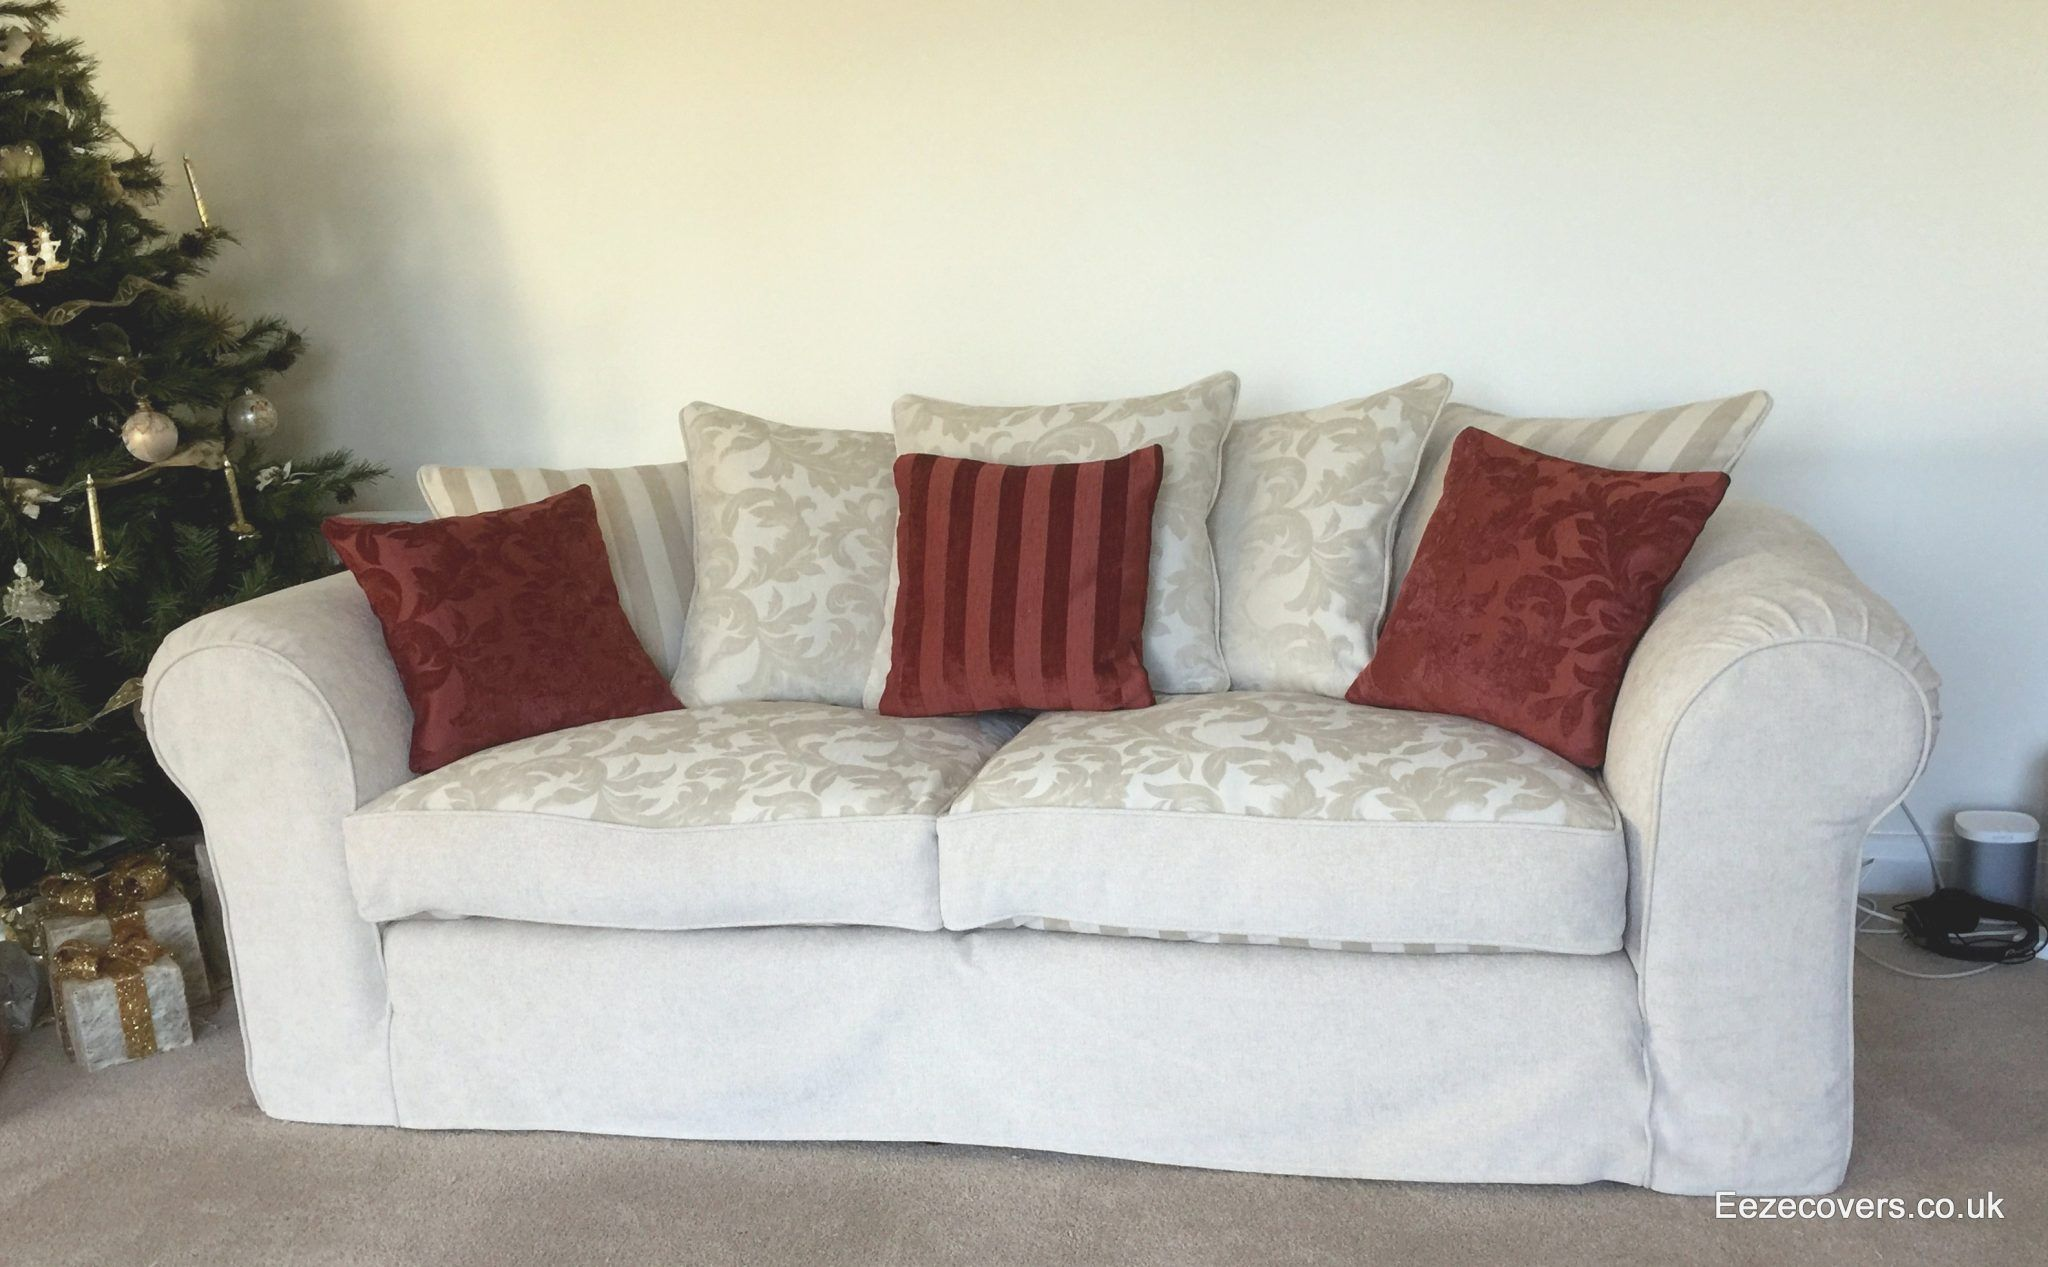 Slipcovers For Leather Sofas Are There Best Diy